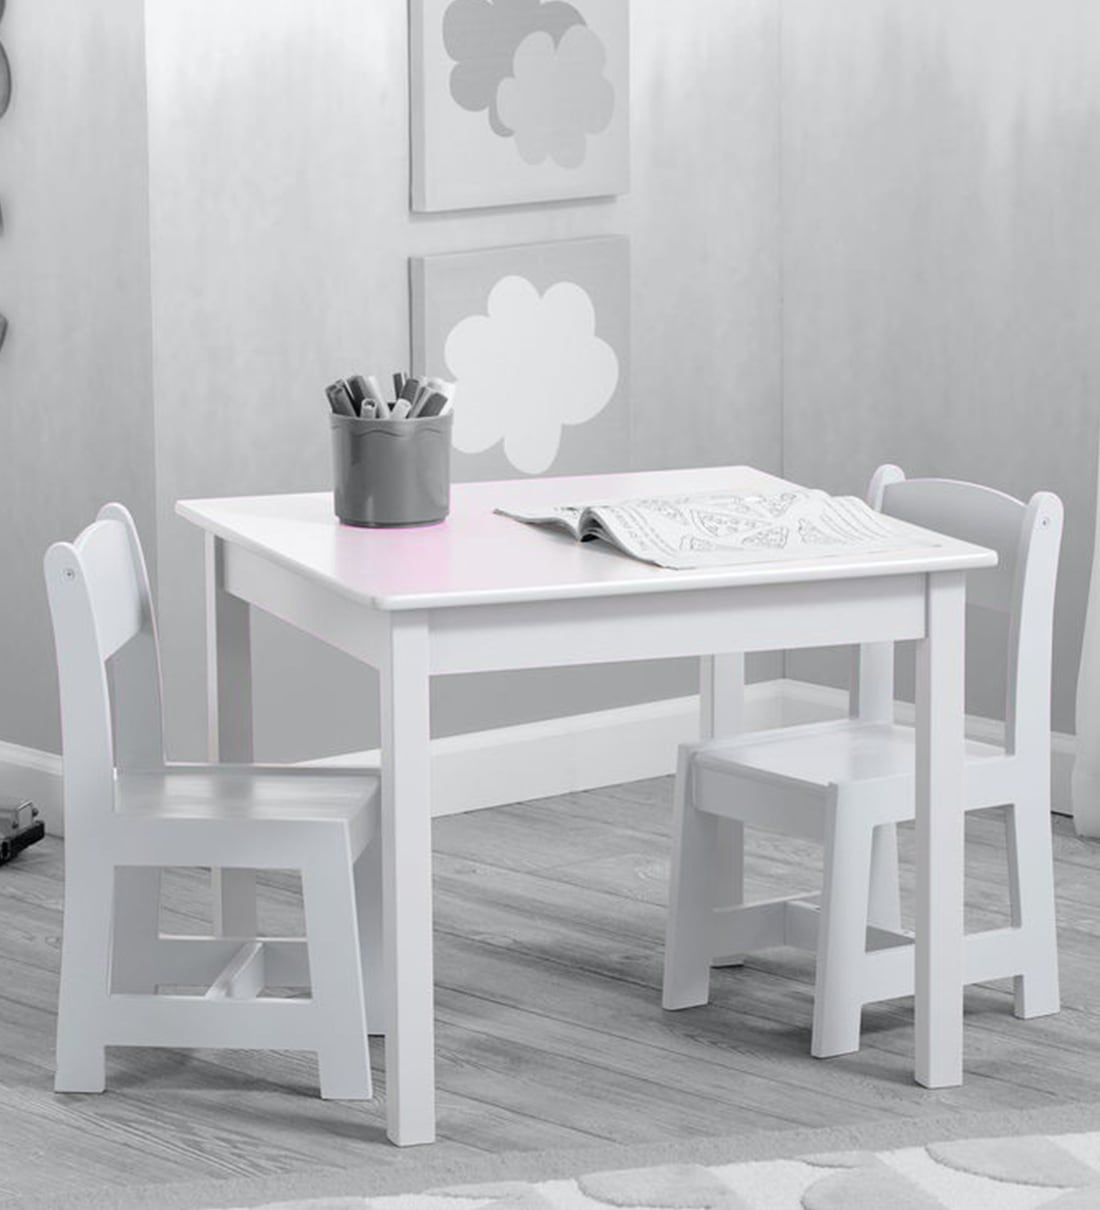 Buy Simple Study Table Chair In White By Delta Children Online Activity Tables Kids Furniture Kids Furniture Pepperfry Product